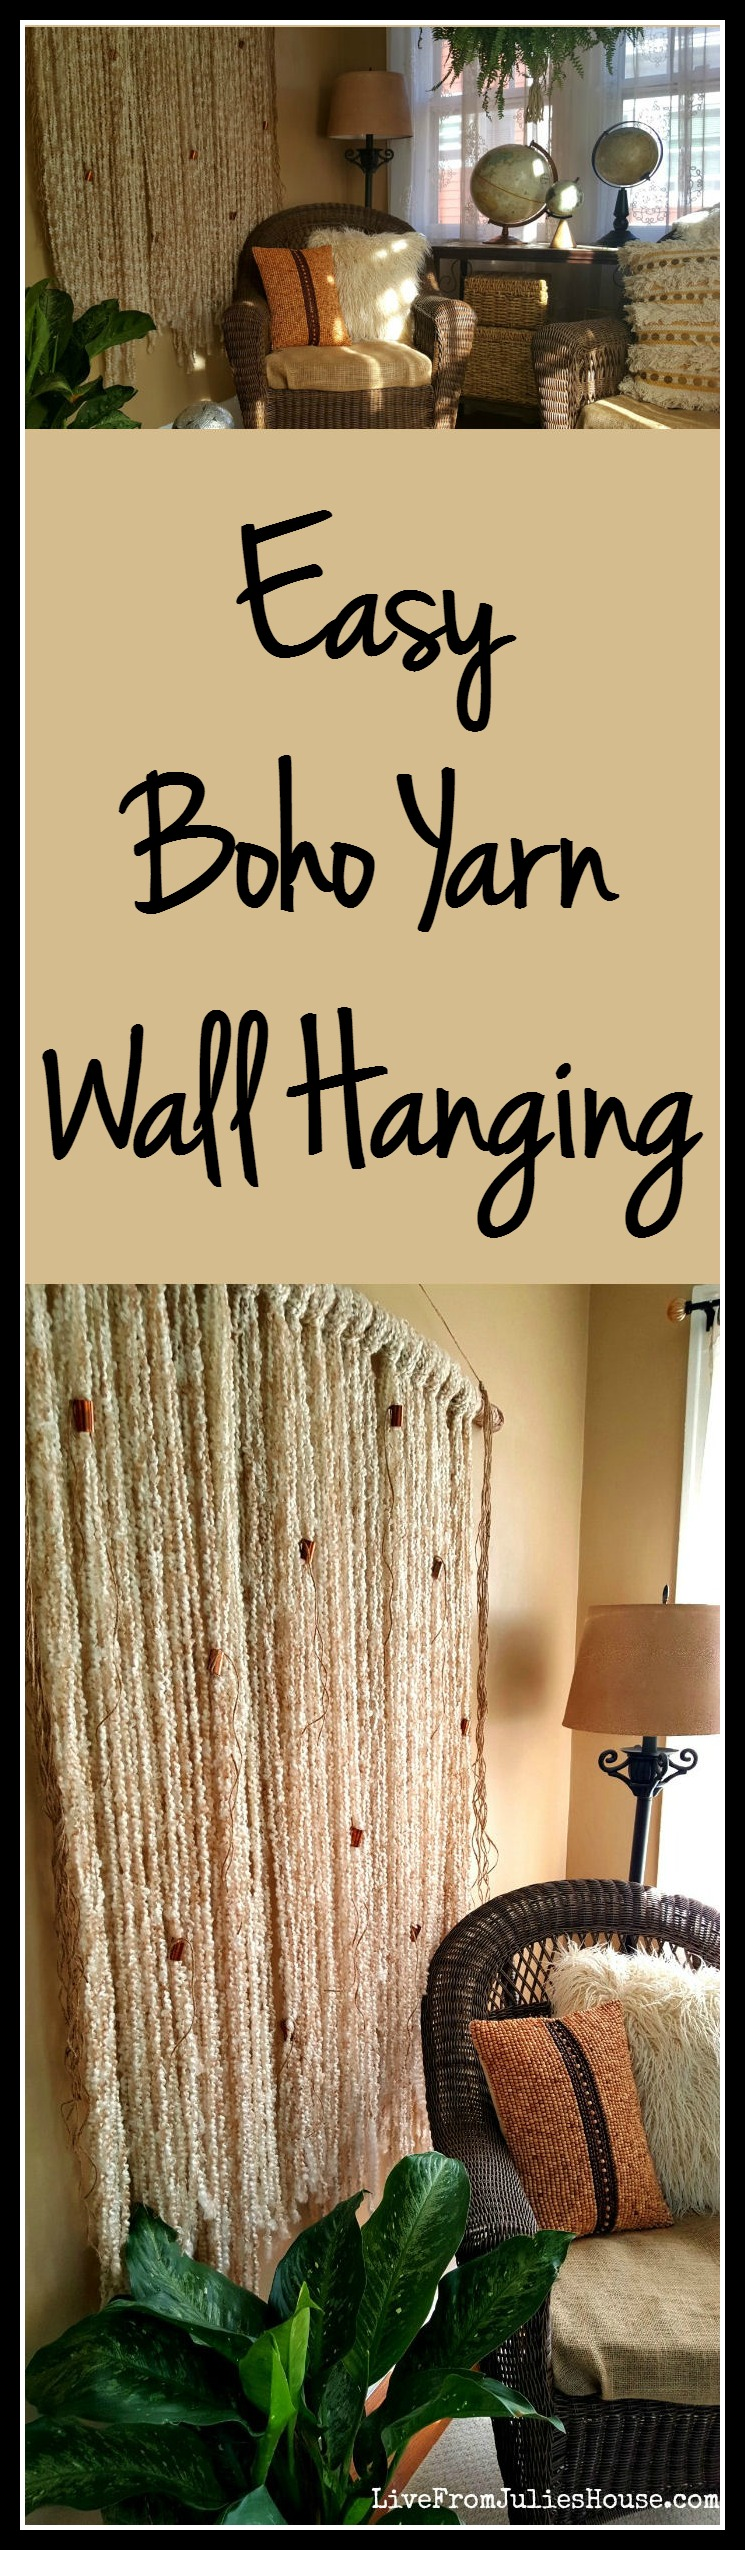 EASY Boho Yarn Wall Hanging - Find out how to make a fast, easy and super-stylish DIY boho yarn wall hanging - no crazy macrame skills required!